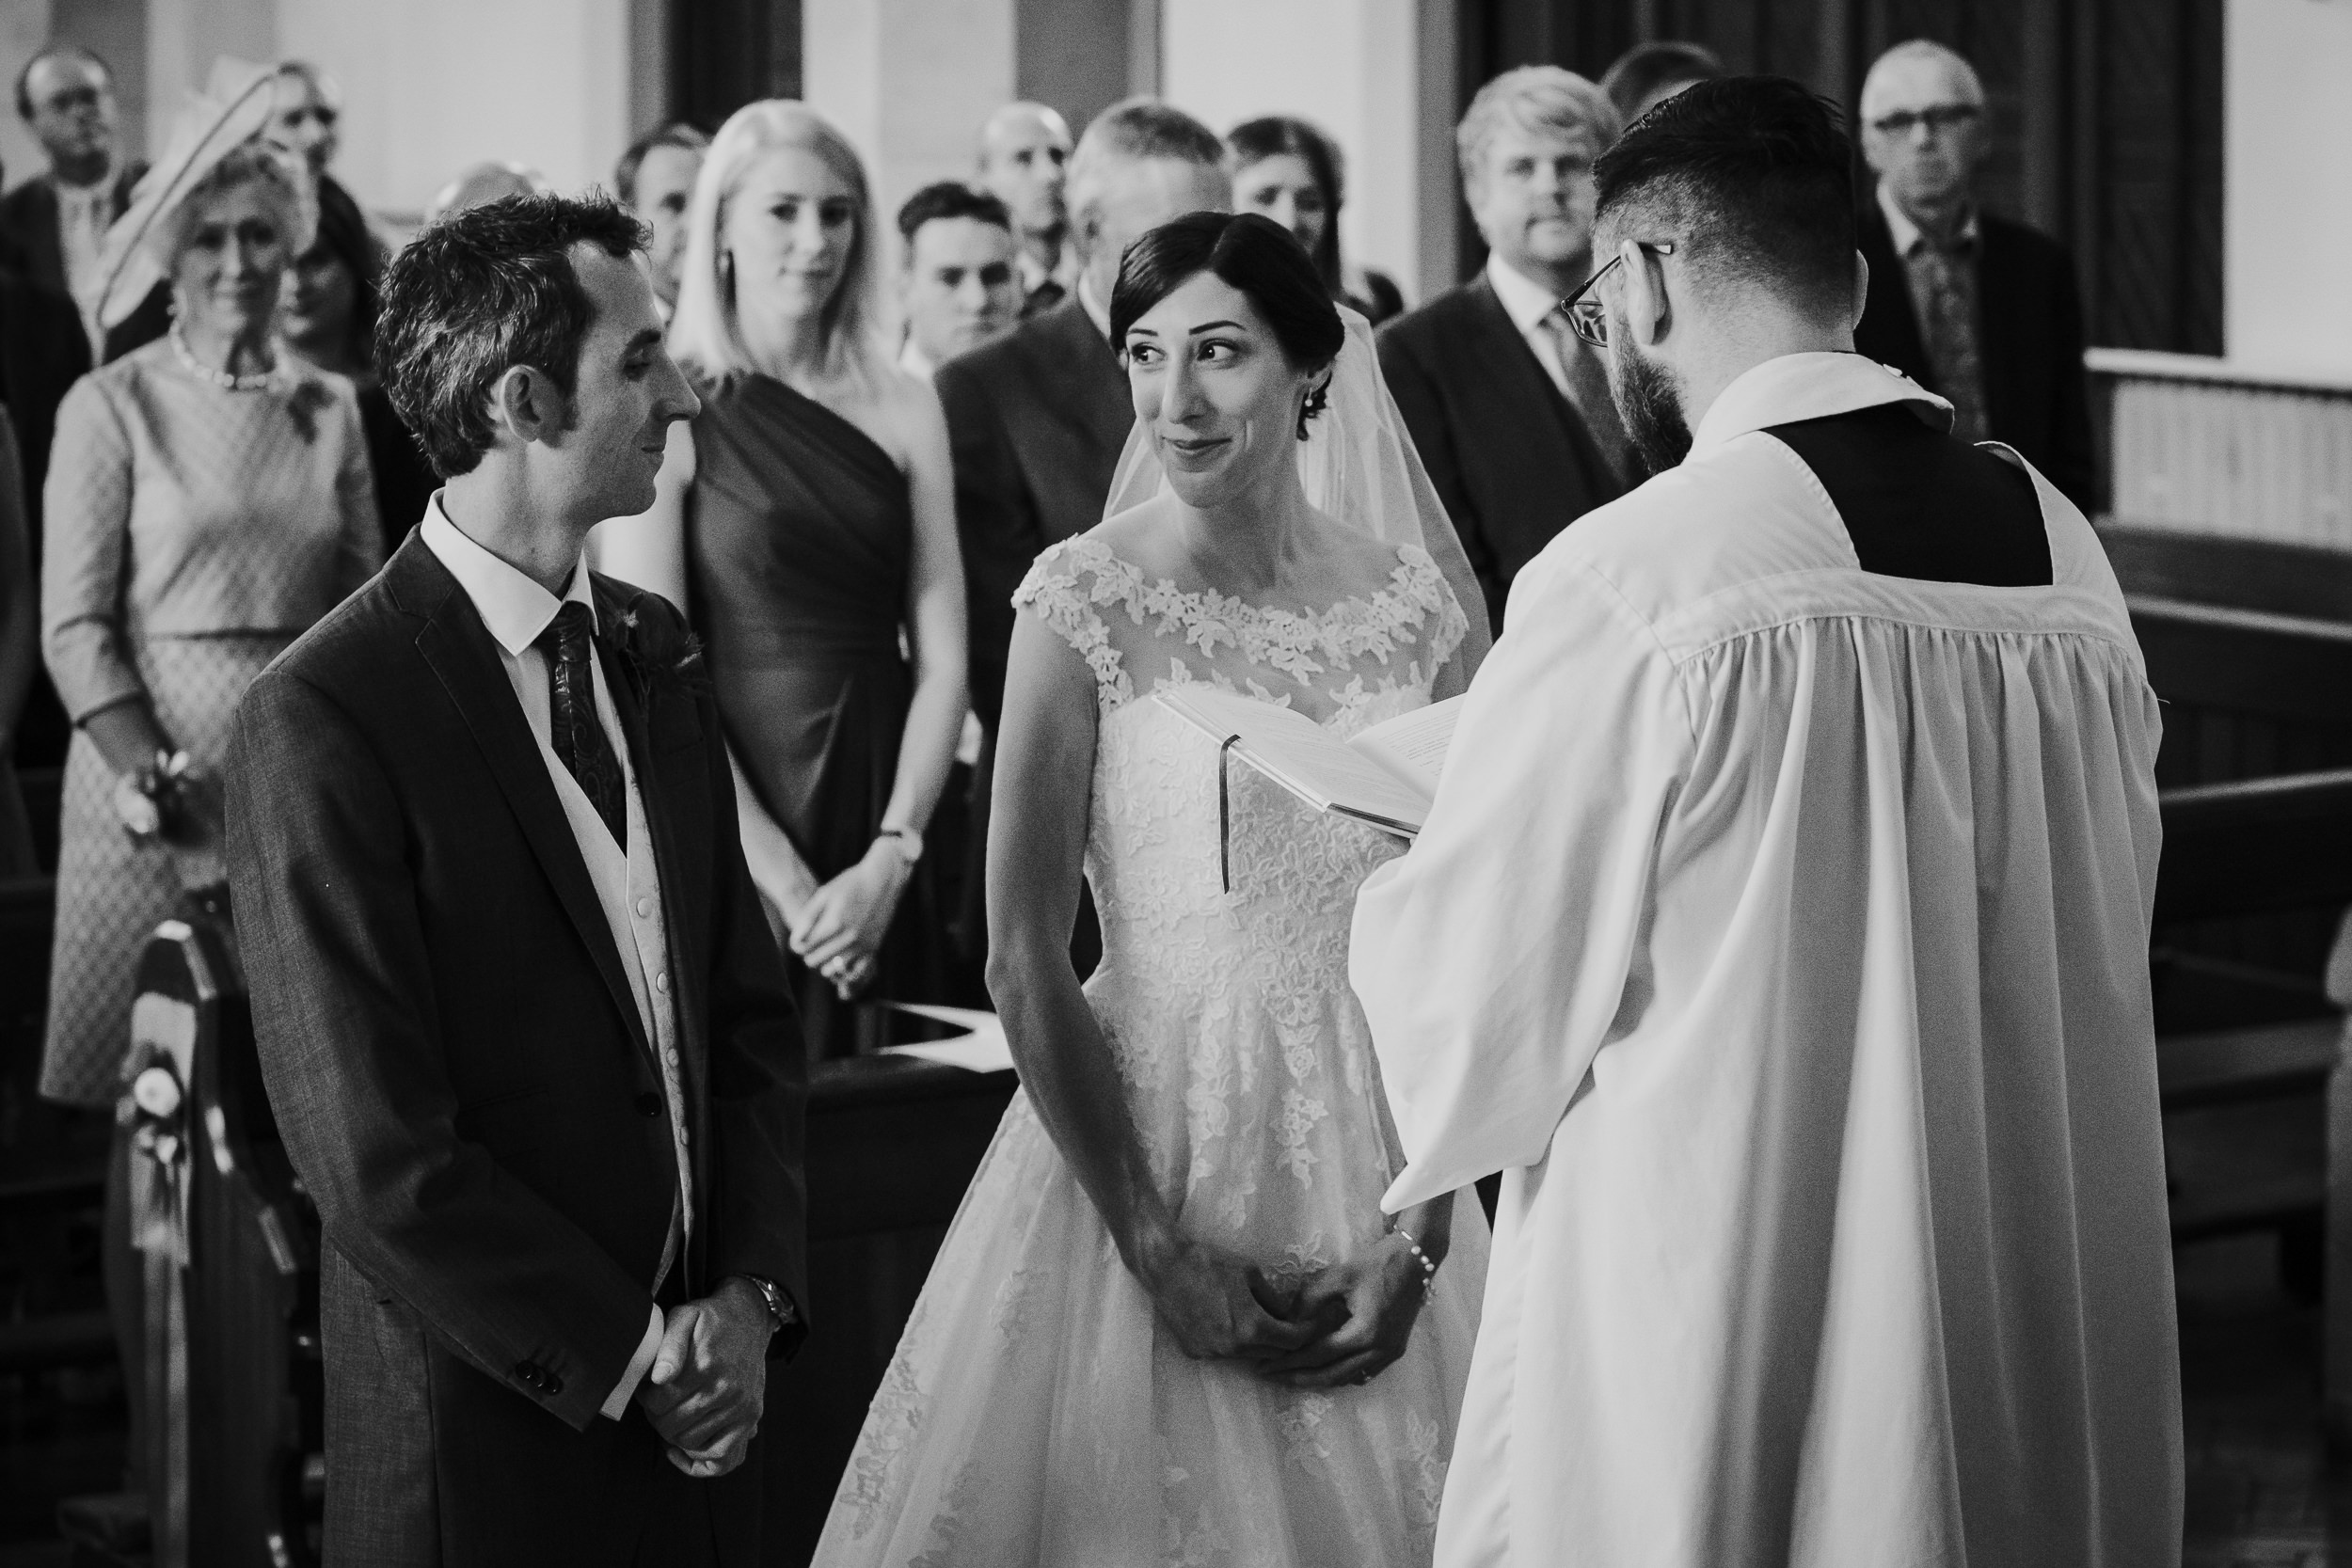 The Bride and Groom during the wedding ceremony